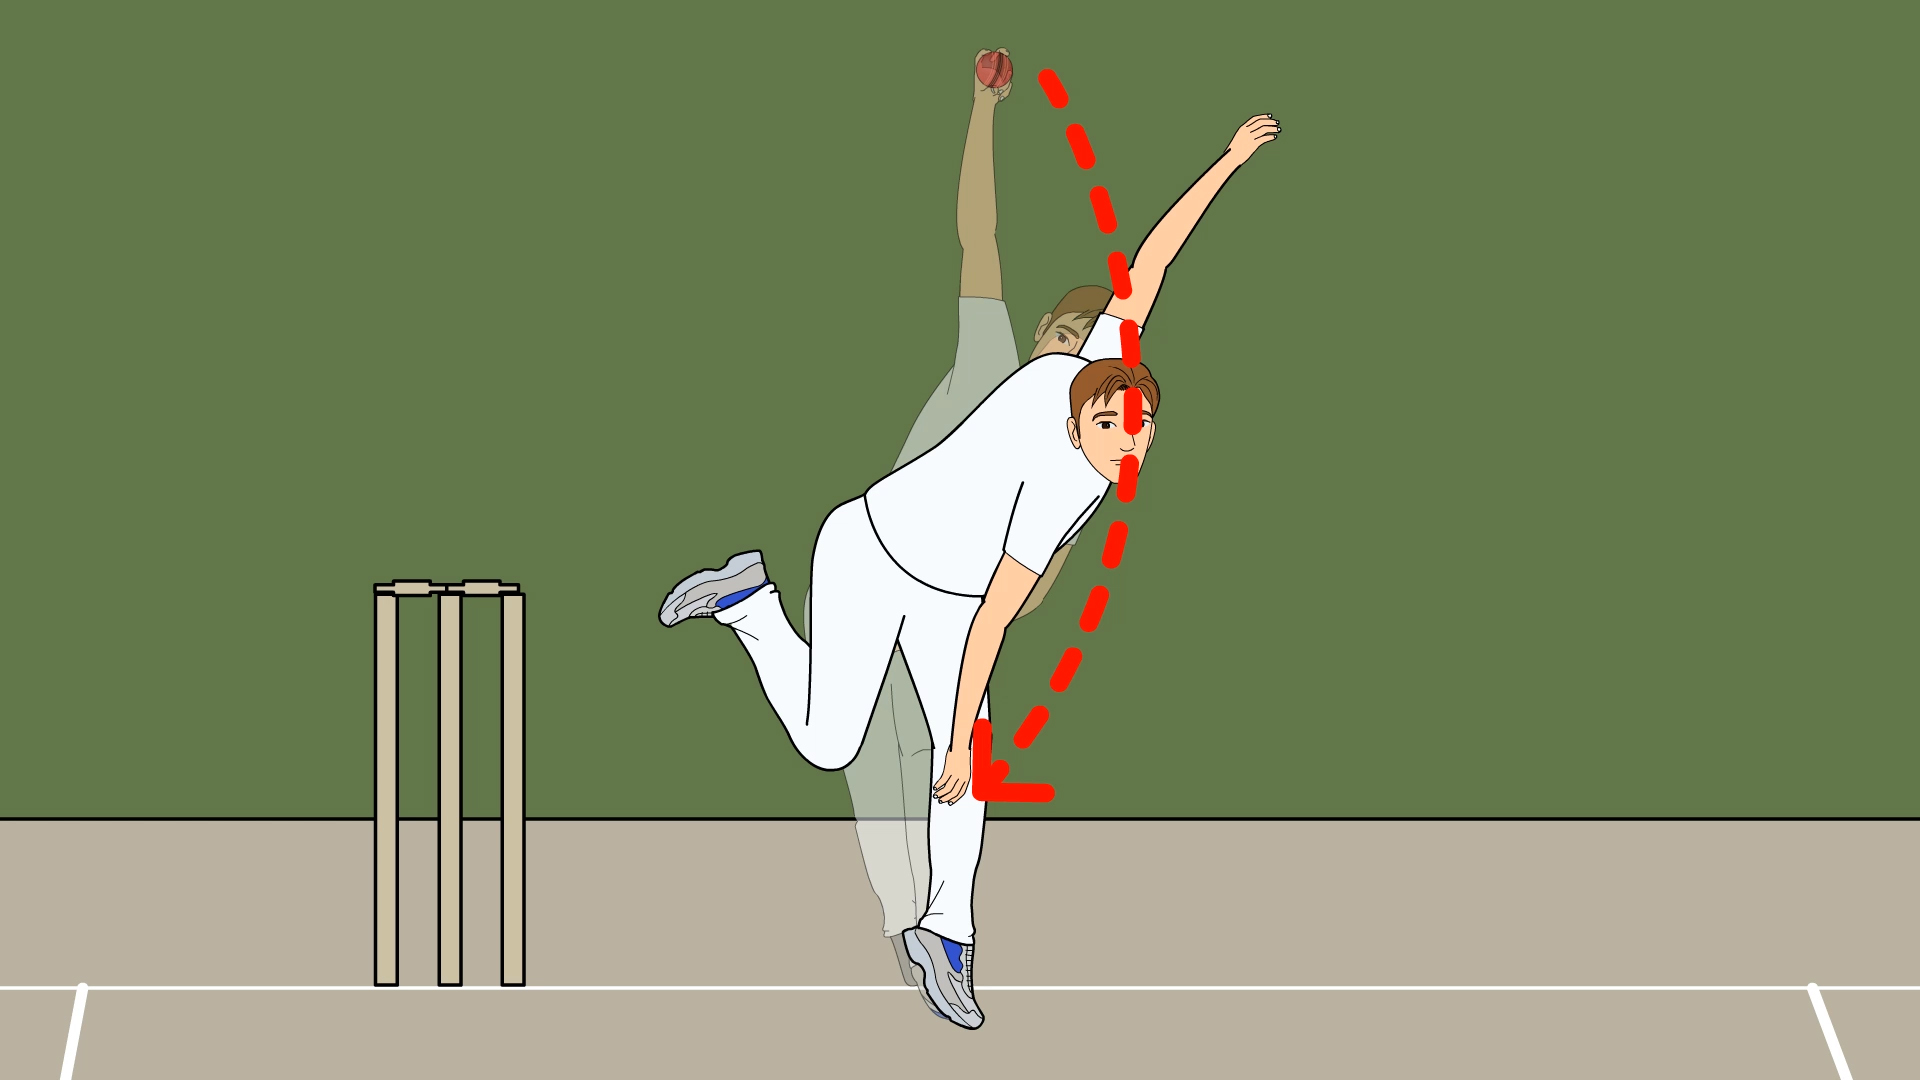 How to Reverse Swing a Cricket Ball pics